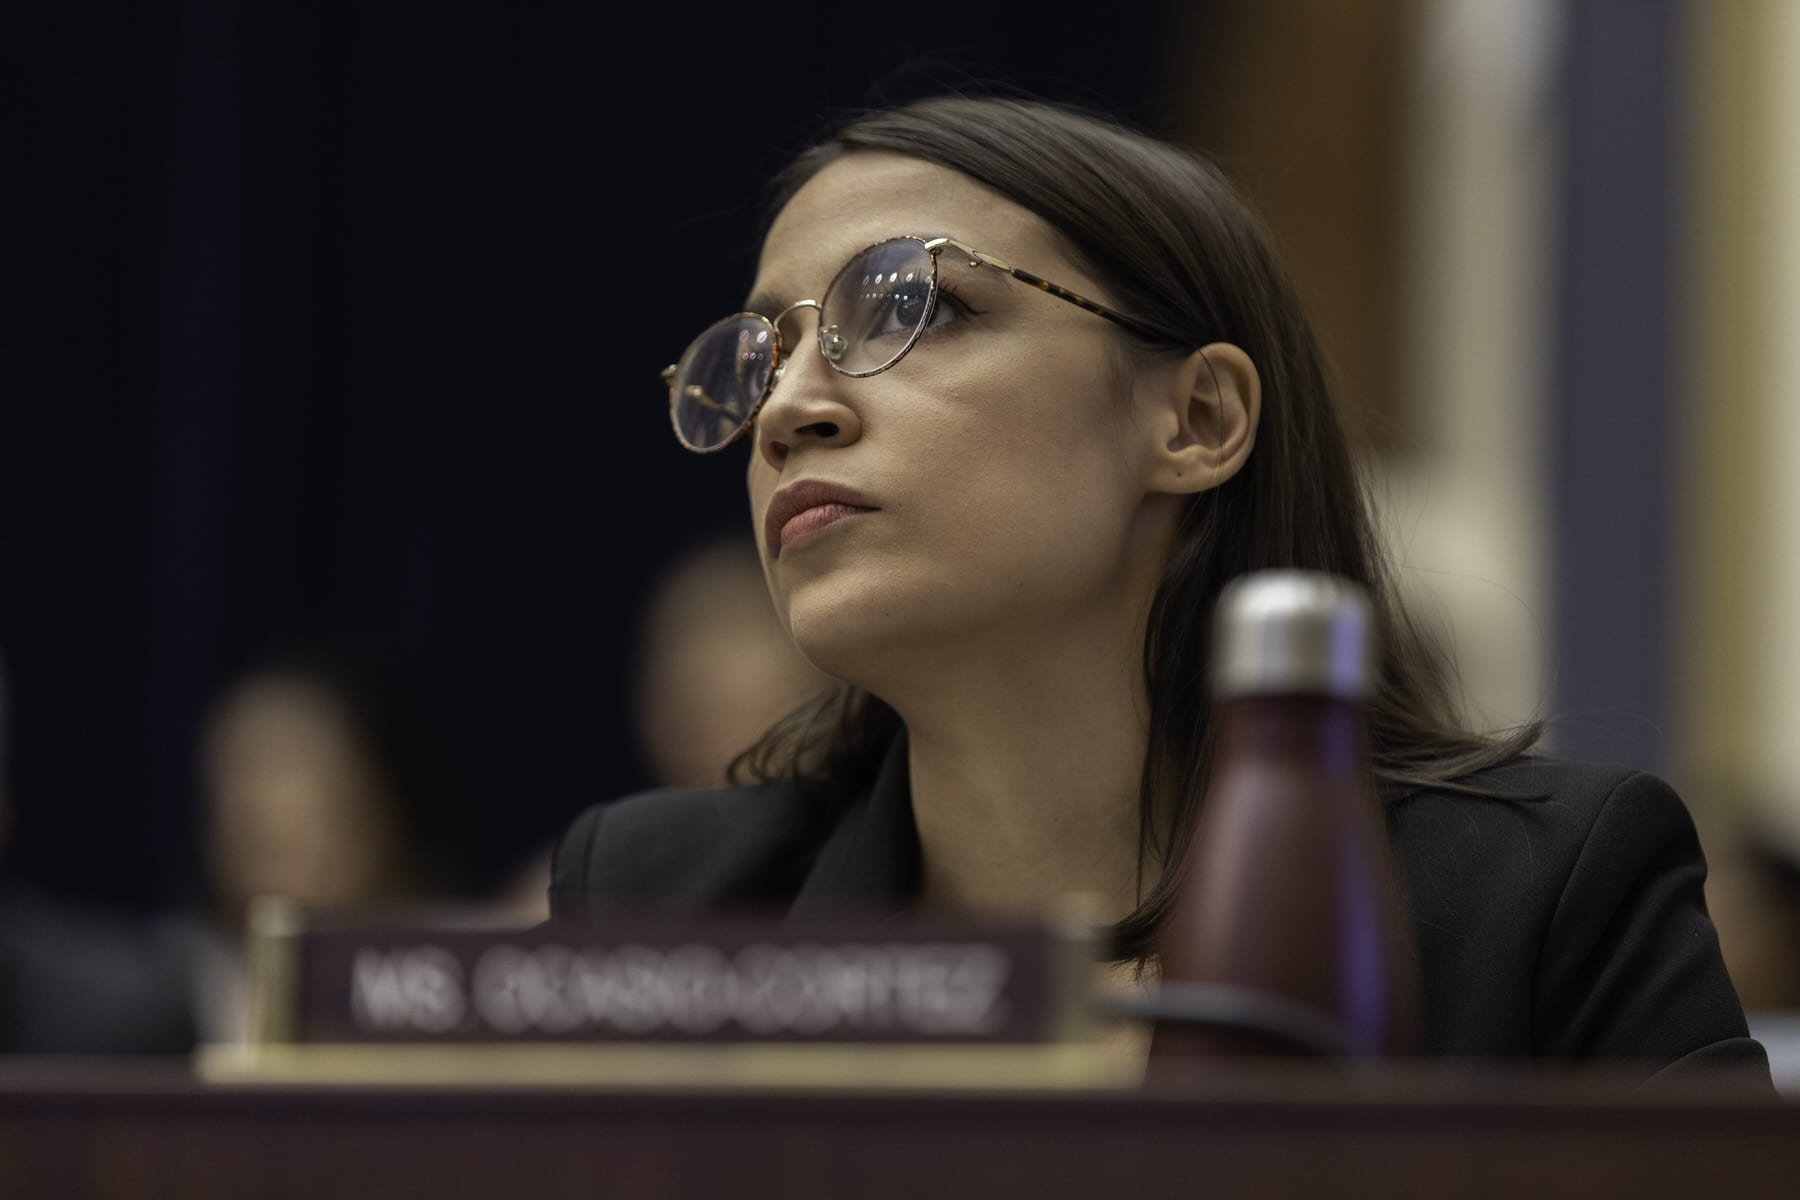 Rep. Alexandria Ocasio-Cortez's Instagram Live could have an impact on assault survivors